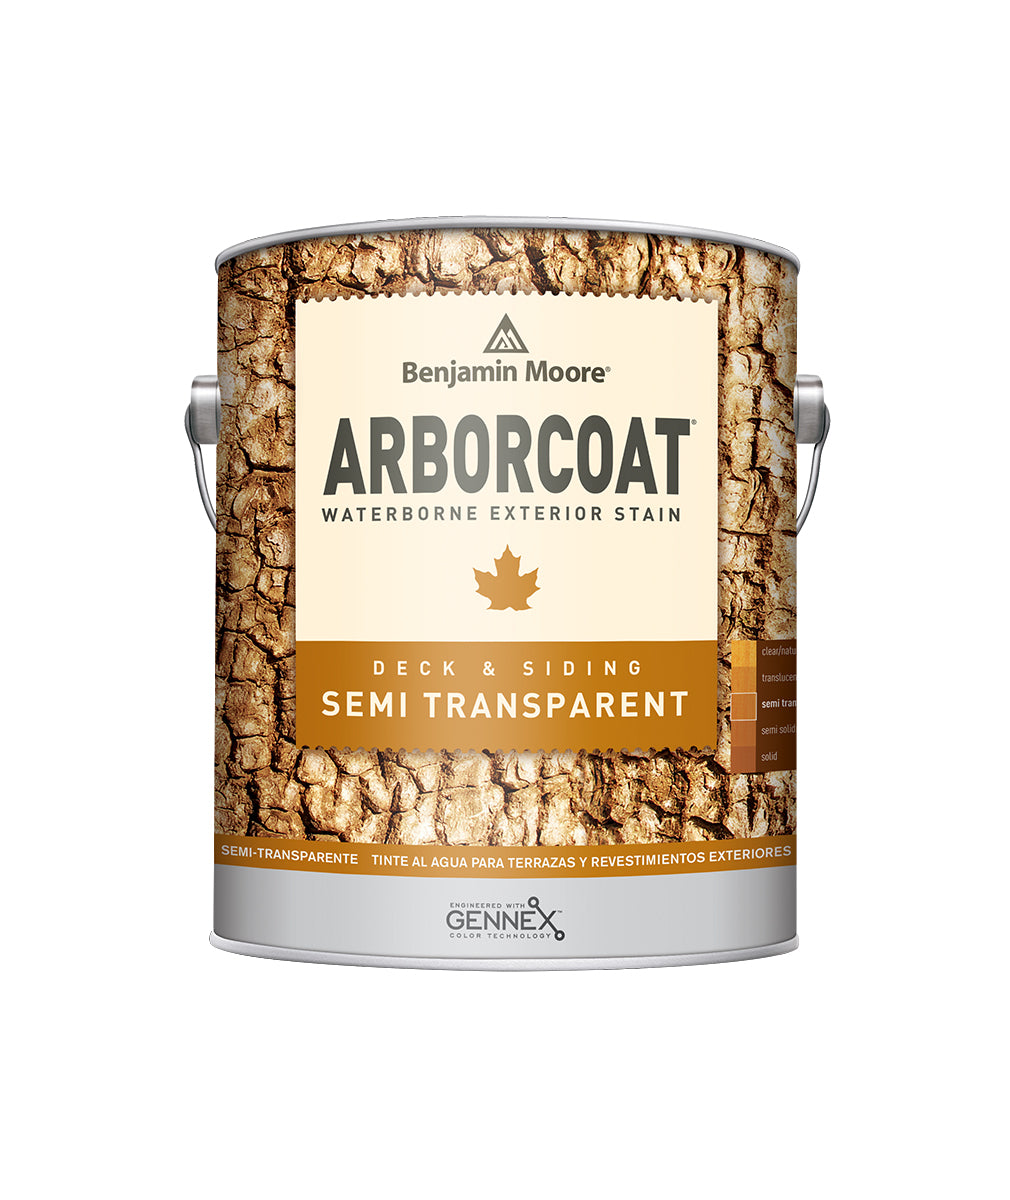 Arborcoat Semi-Transparent Gallon, available at Catalina Paints in CA.